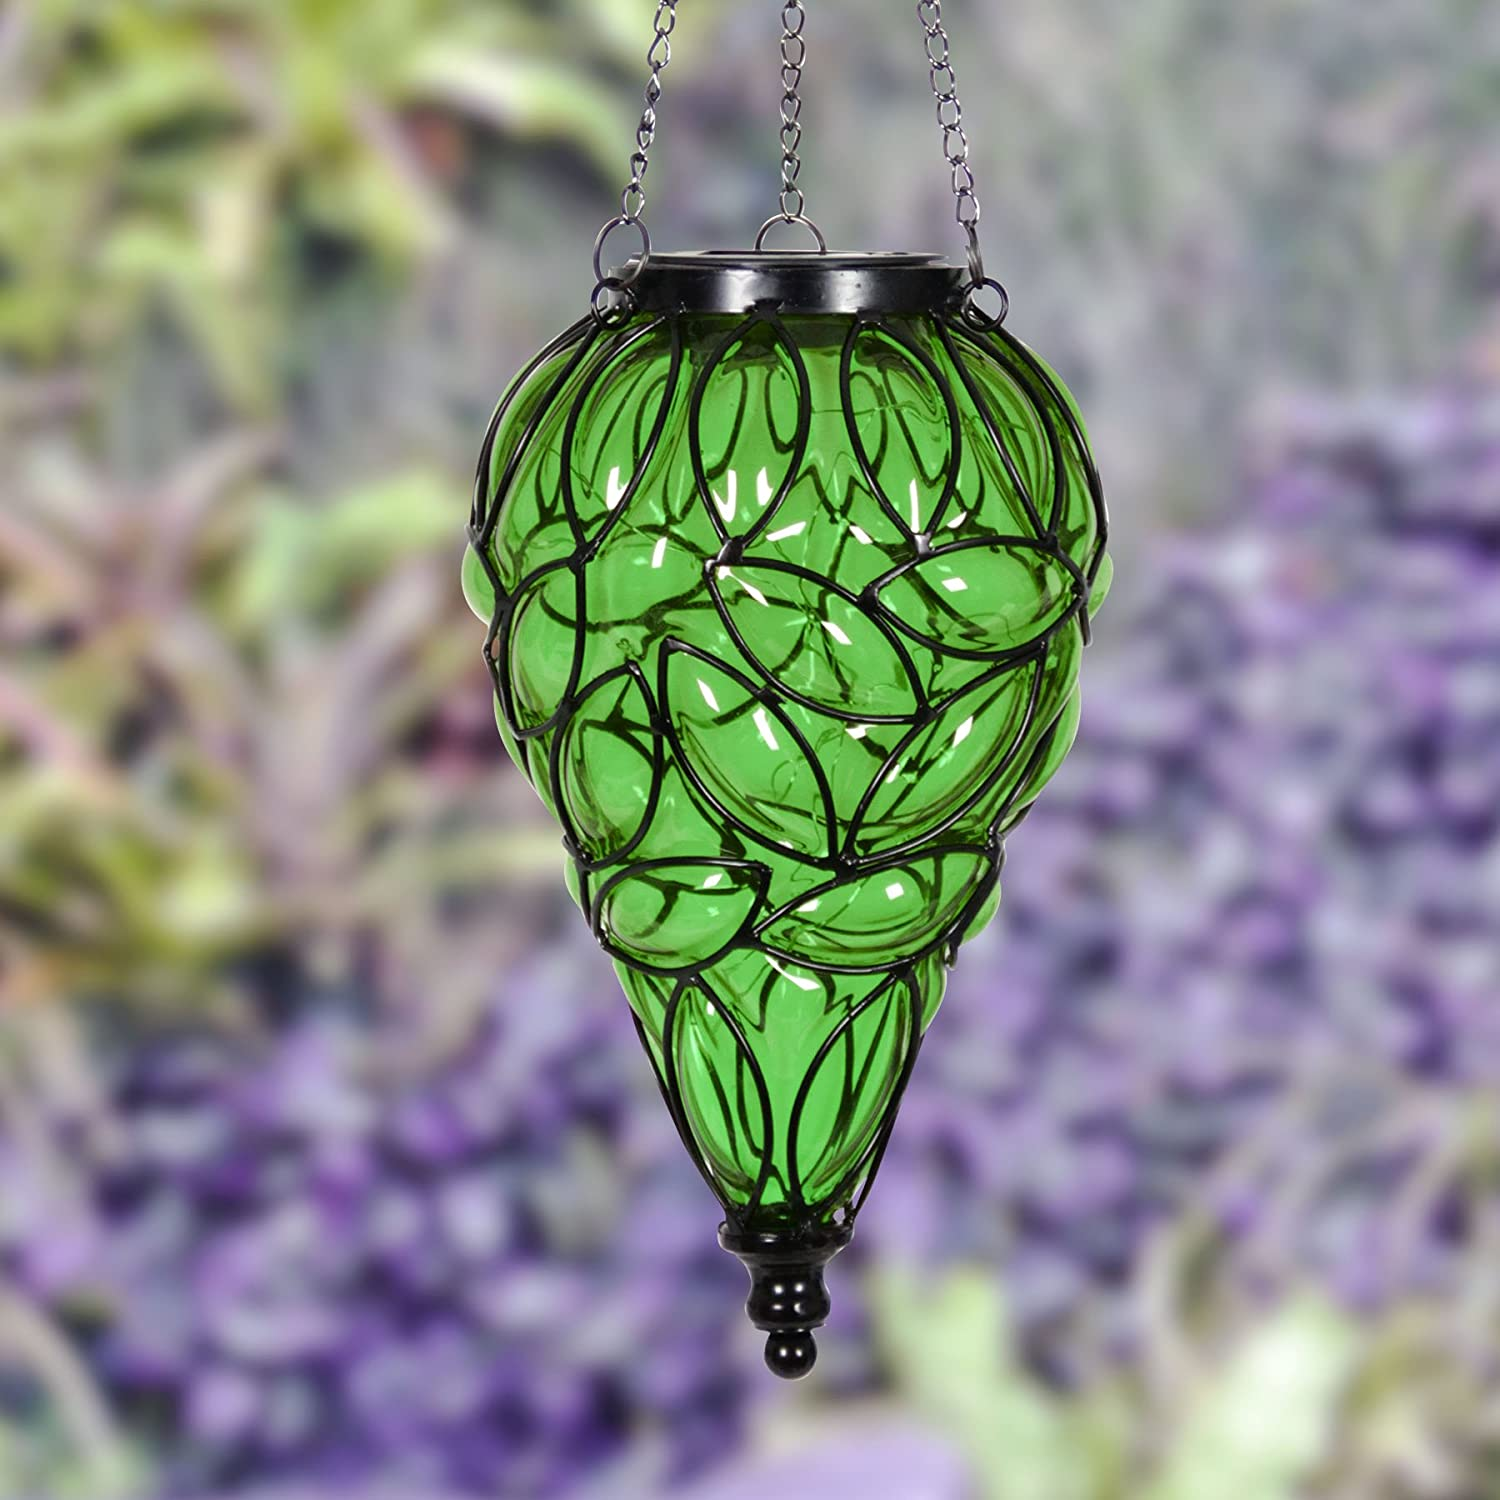 Glass Tear-Shaped Hanging Lantern Exhart Amber Solar Lantern Teardrop Glass Ceiling Lantern Hangs in a Metal Cage w// 12 Blue LED Firefly Solar Lights 7 L x 7 W x 24 H